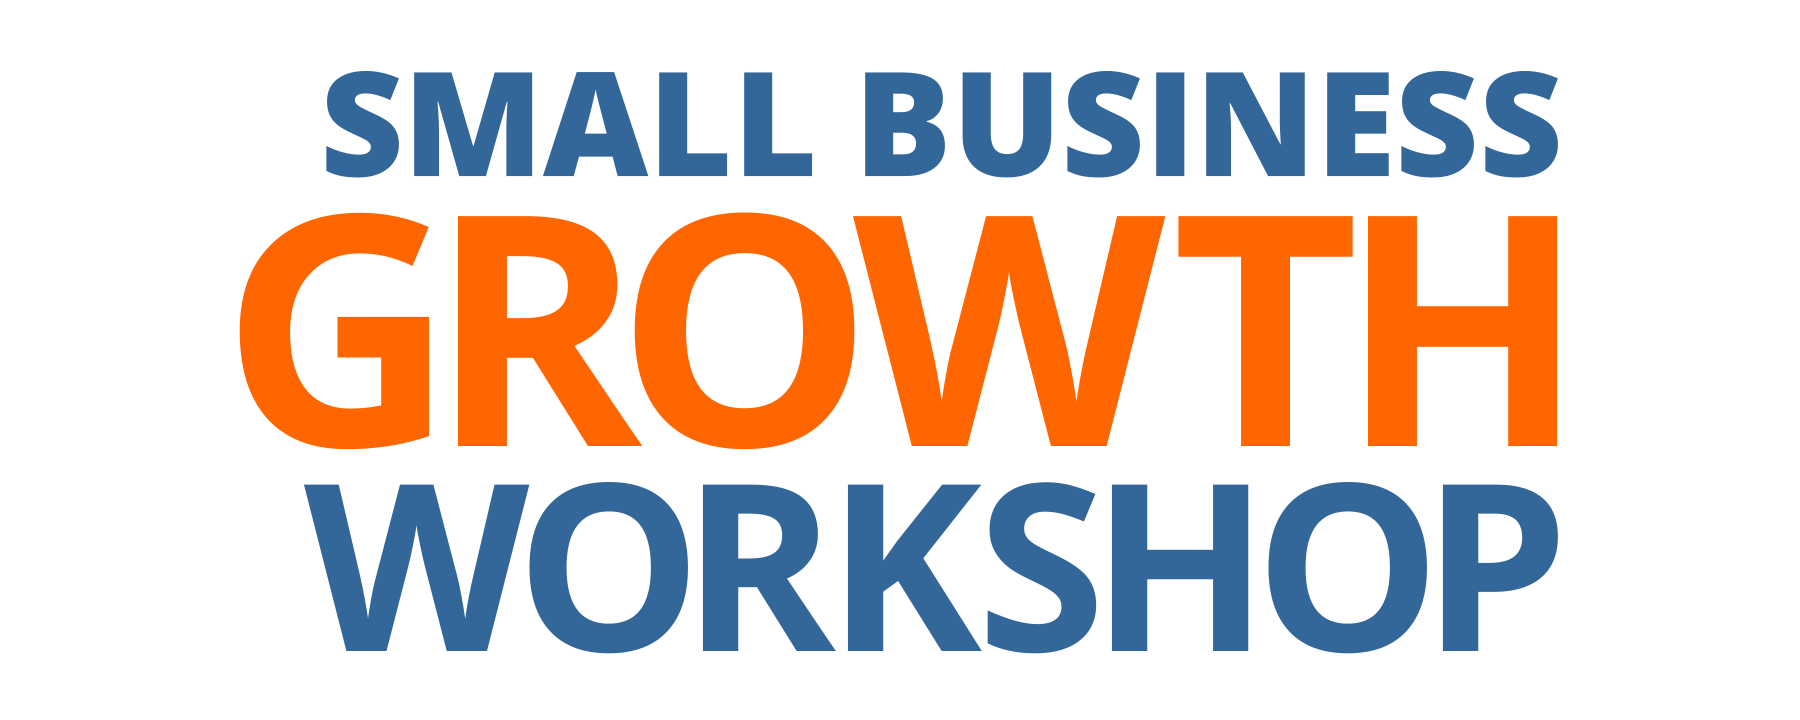 Small Business Growth Workshop - August 11, 2017 - Los Angeles, CA